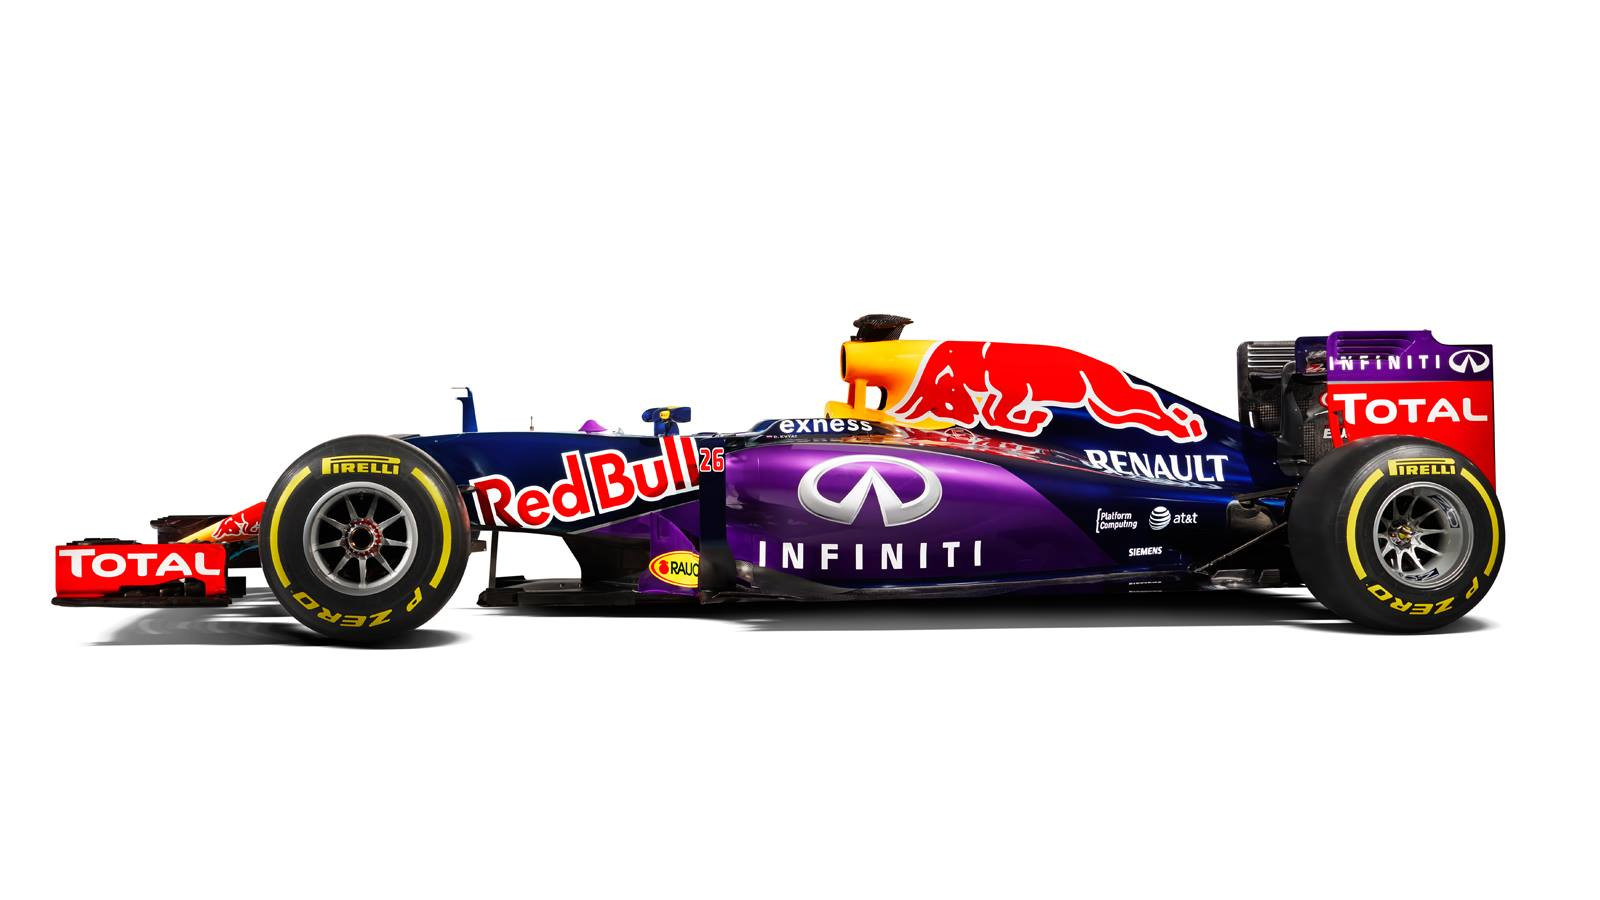 2015 f1 rb11 autoblog - photo #25